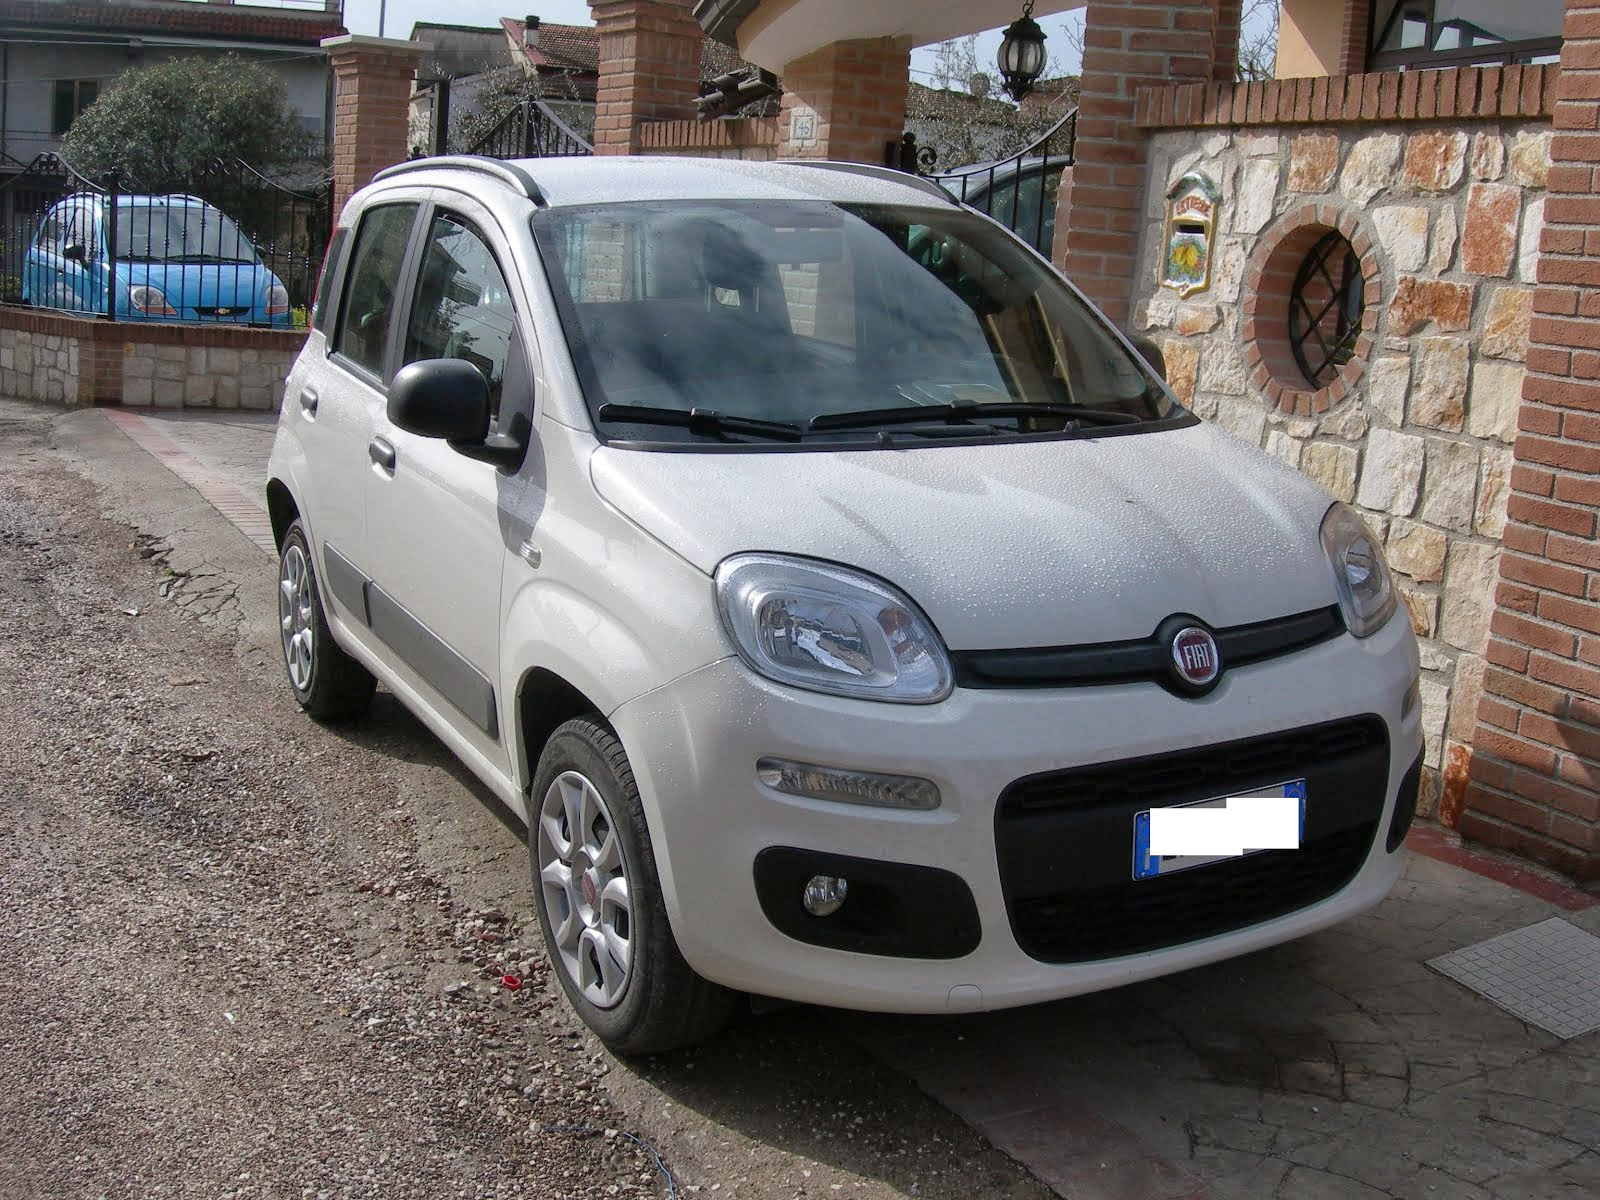 Fiat new  Panda 800 TwinAir Natural Power Metano 2012 30.000 km